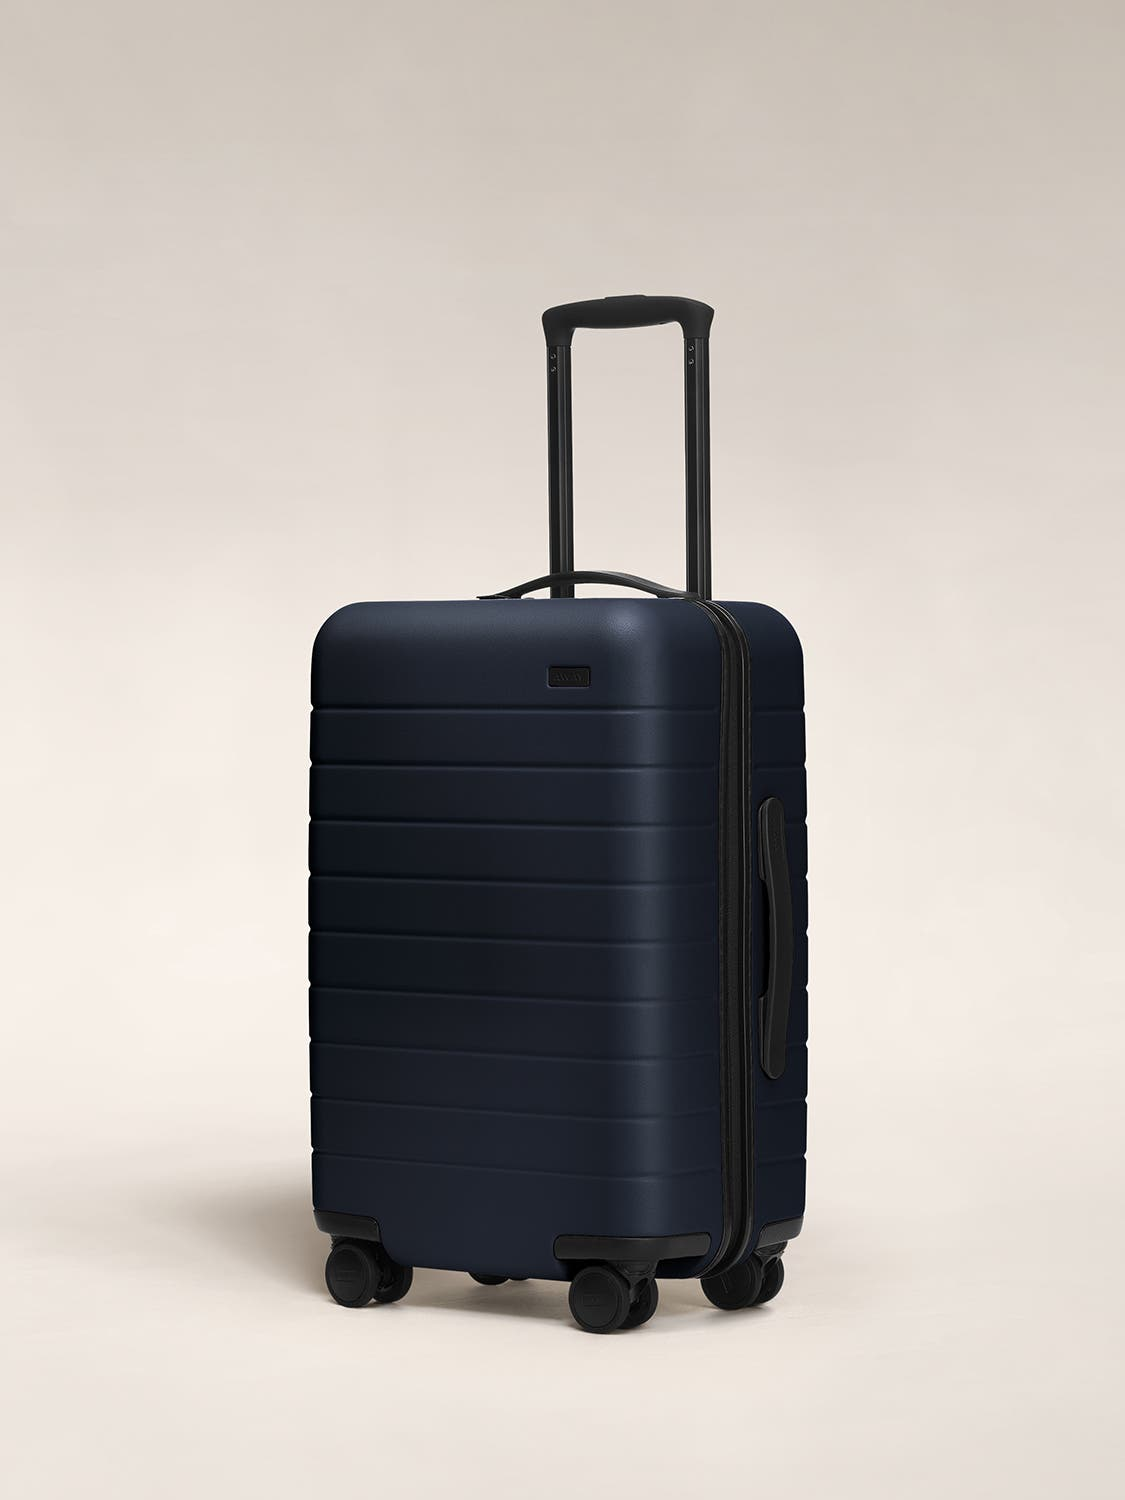 Navy carry-on hardside with raised telescopic handles shown at an angle.